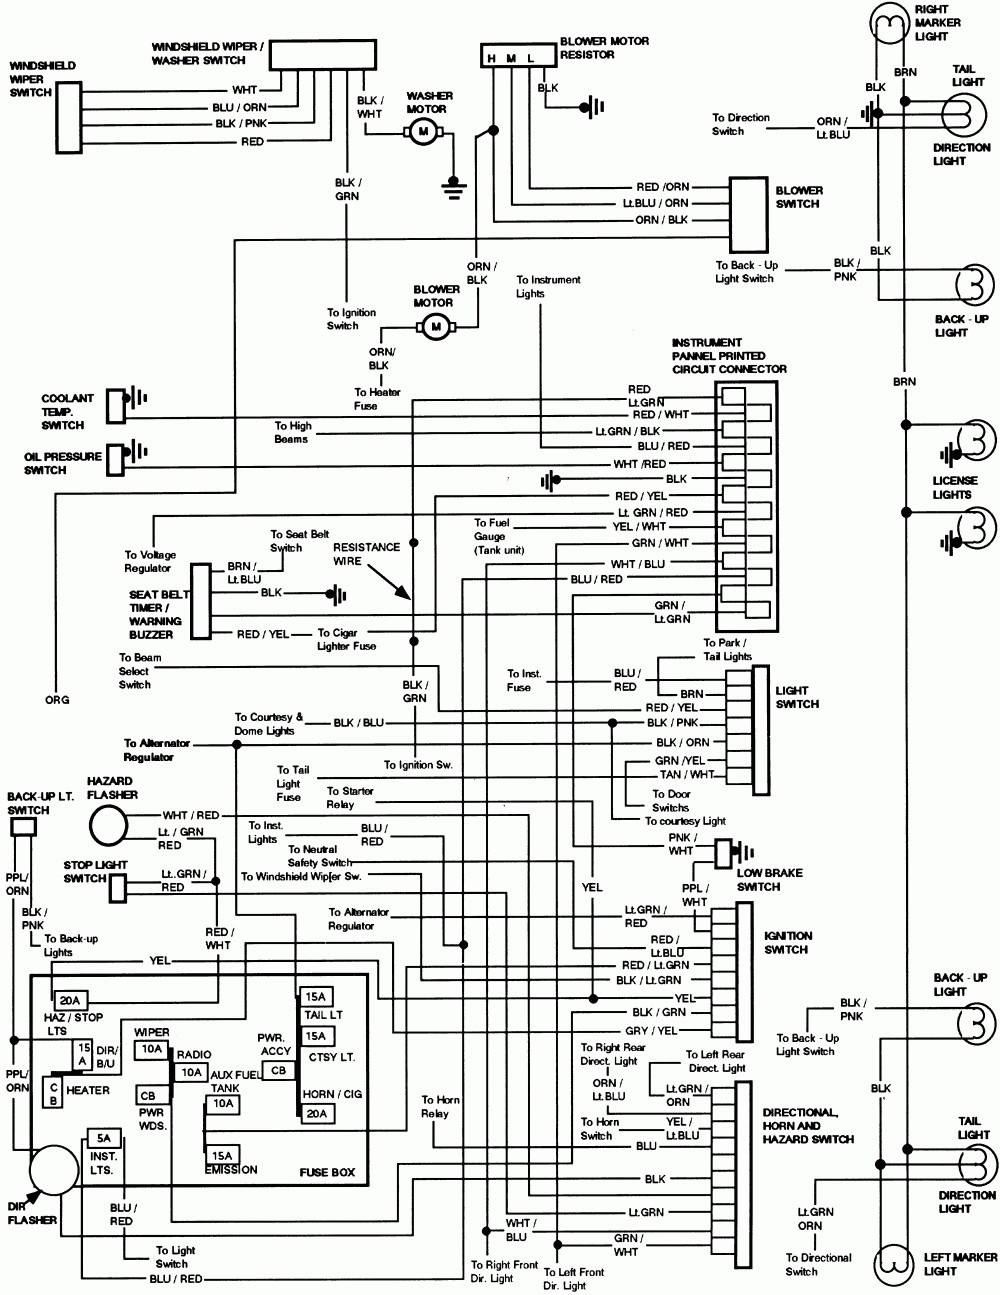 medium resolution of 91 f150 wiring diagram schematic wiring diagram blog 91 f150 engine diagram